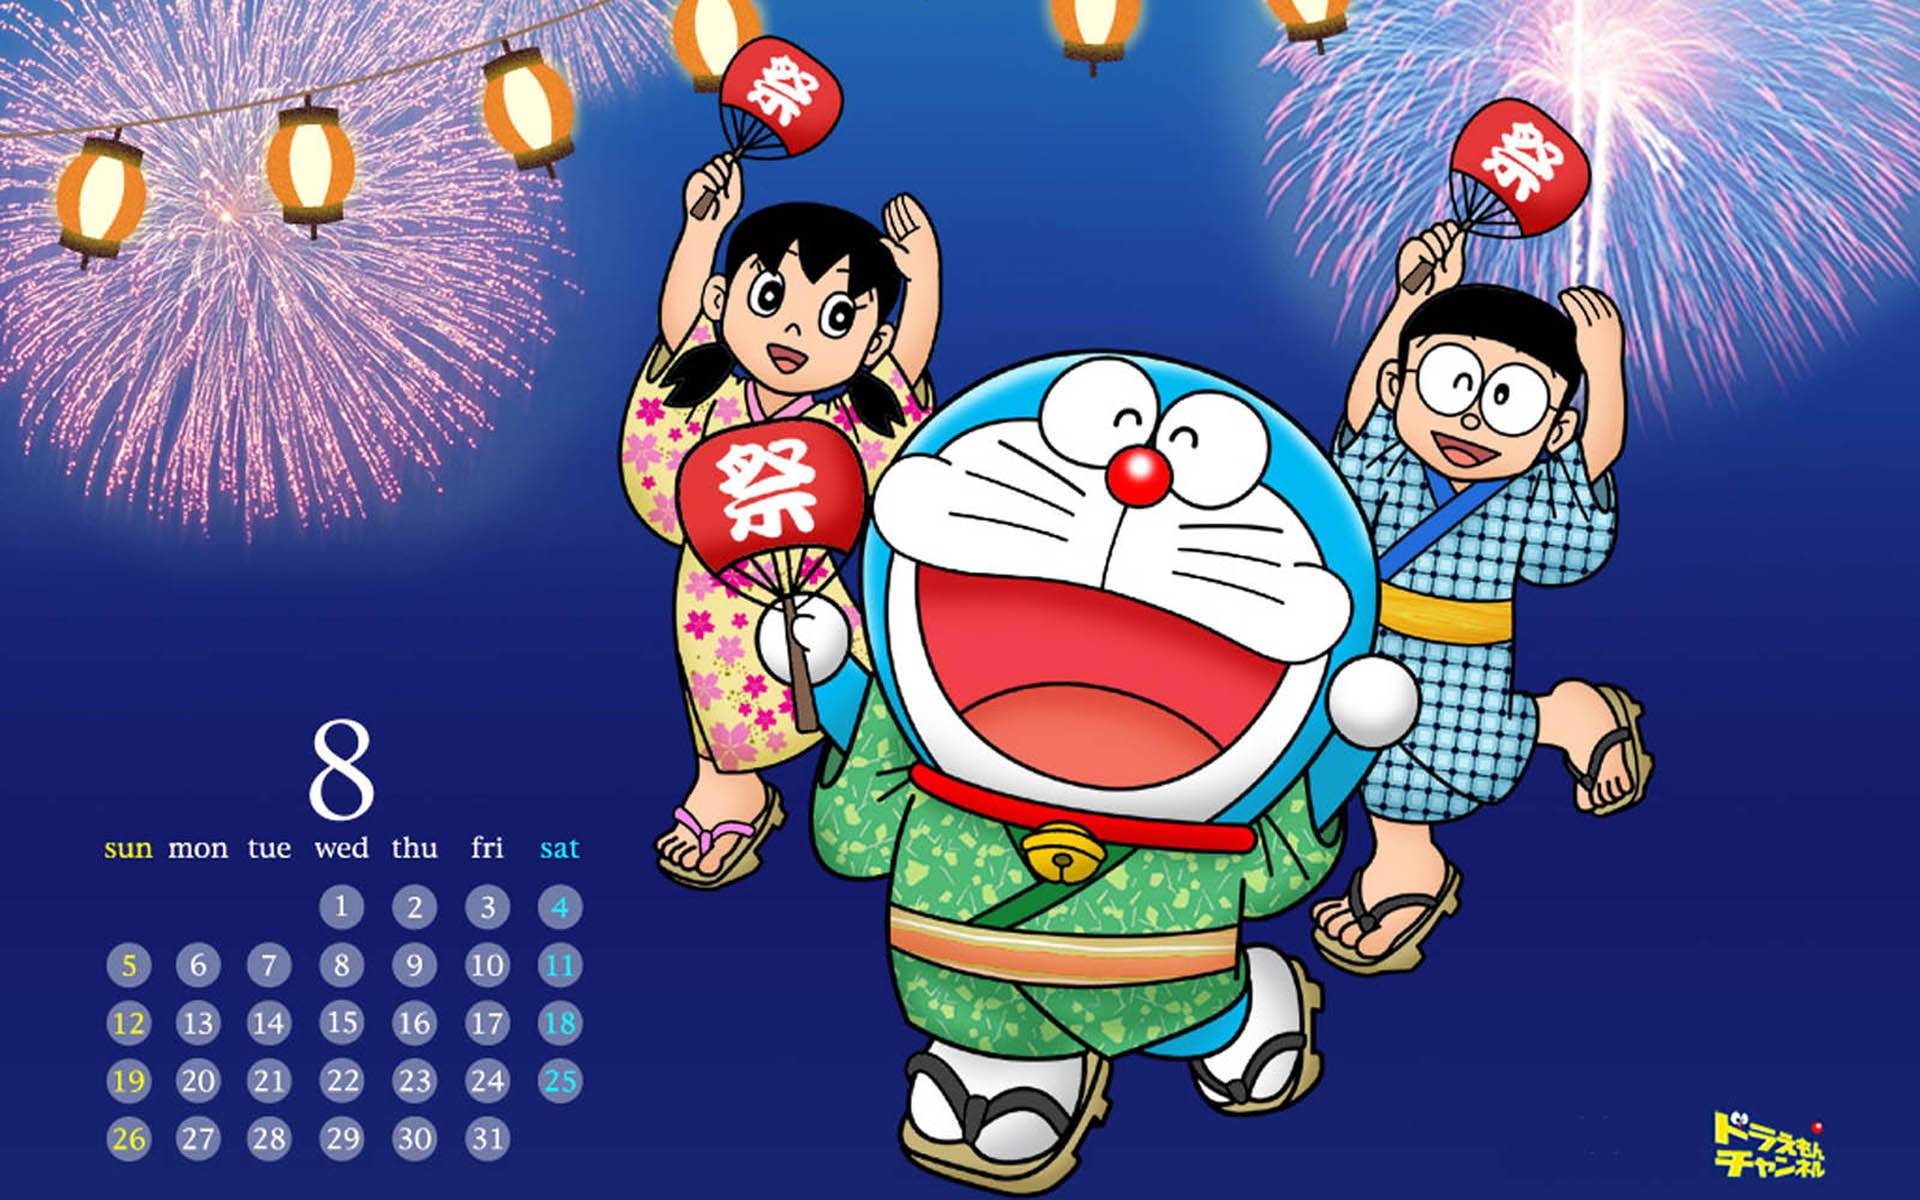 Wallpaper Of Doraemon For Desktop  Wallsjpg.com